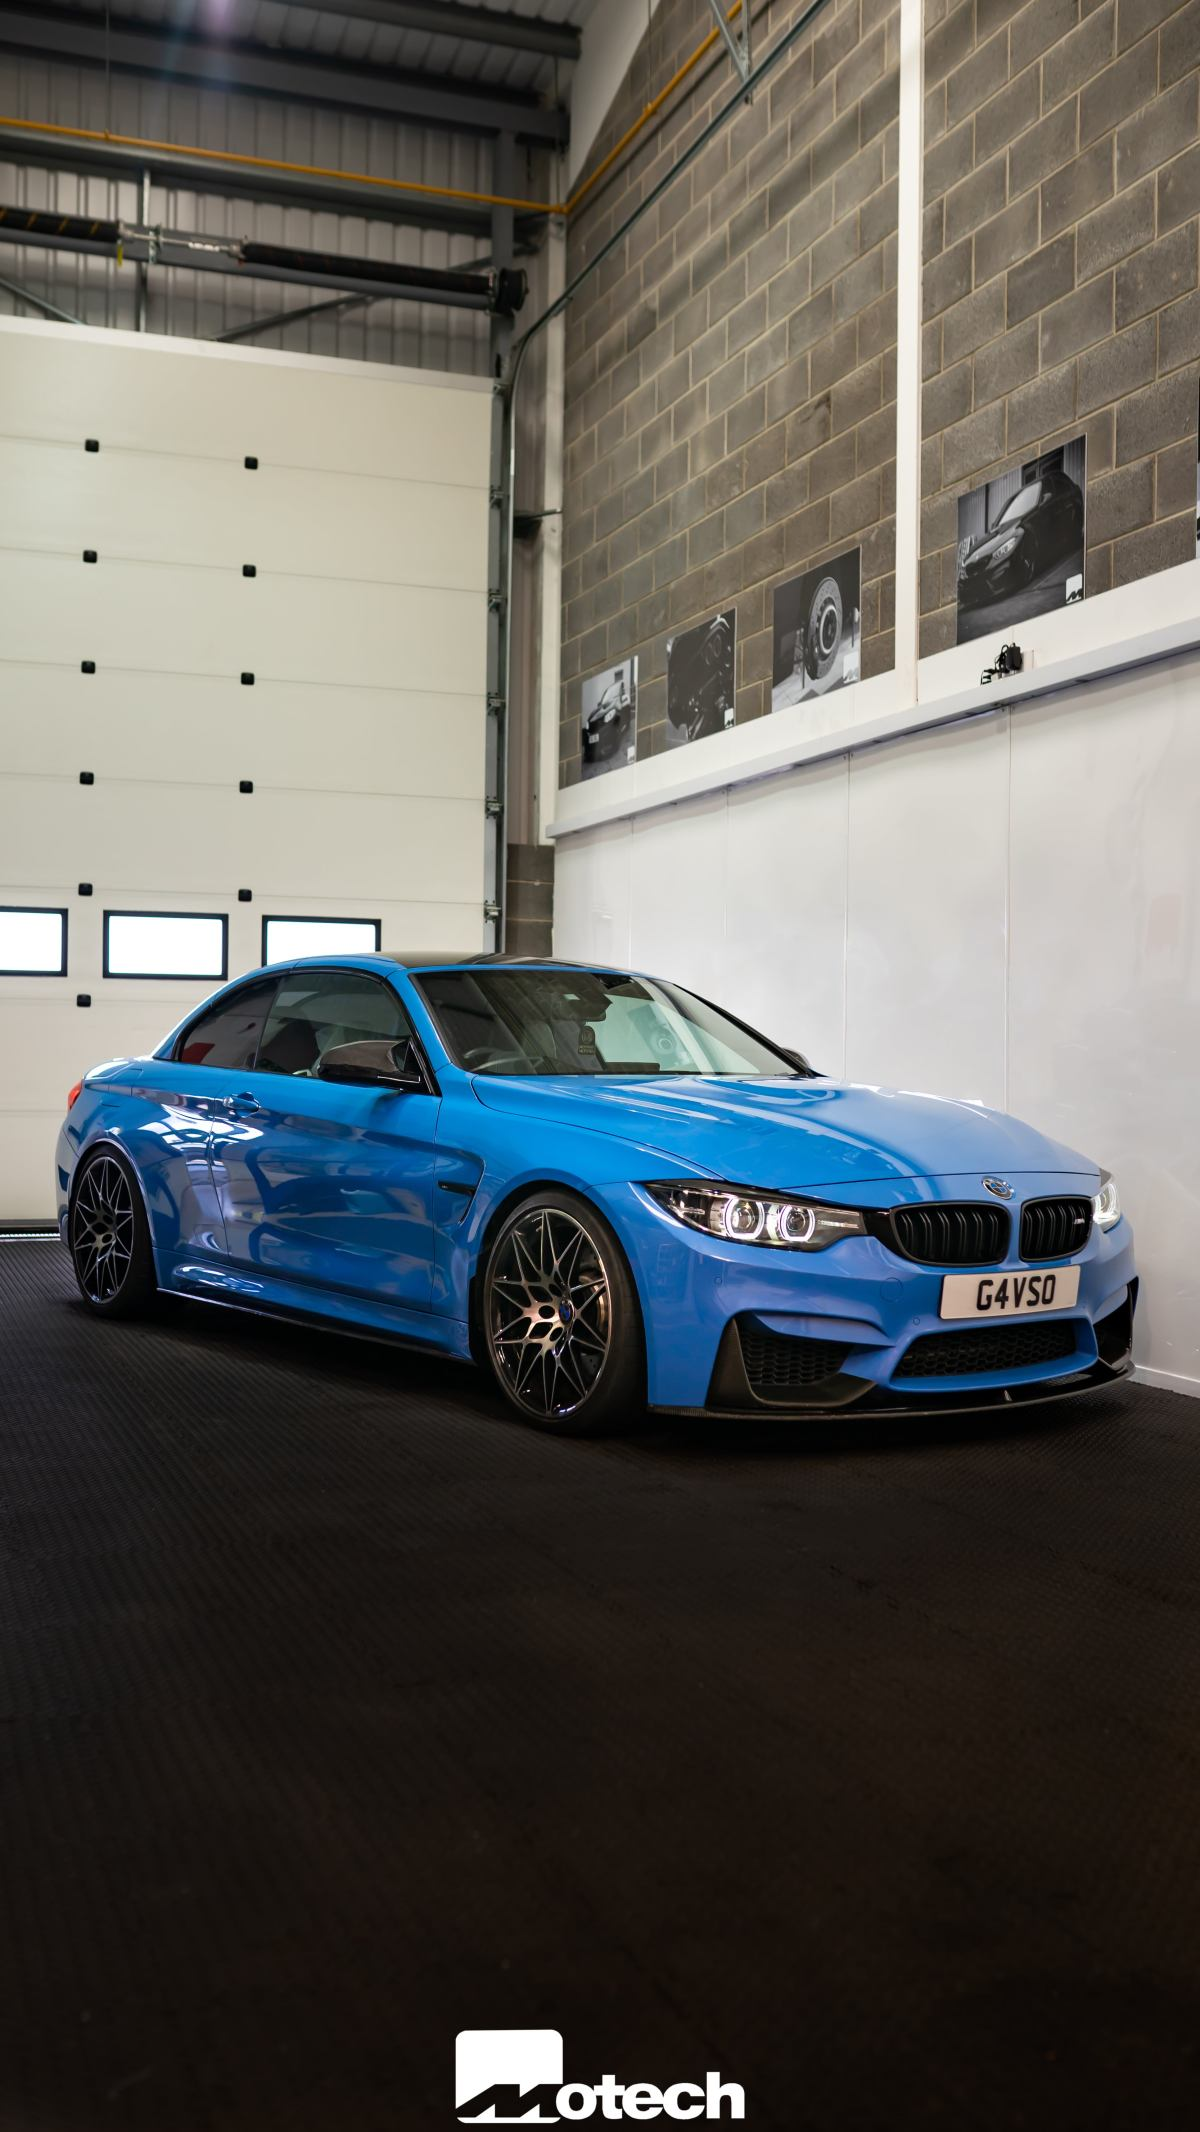 Bmw M4 Stance : stance, Motech, Stance, Lowering, Springs, Performance